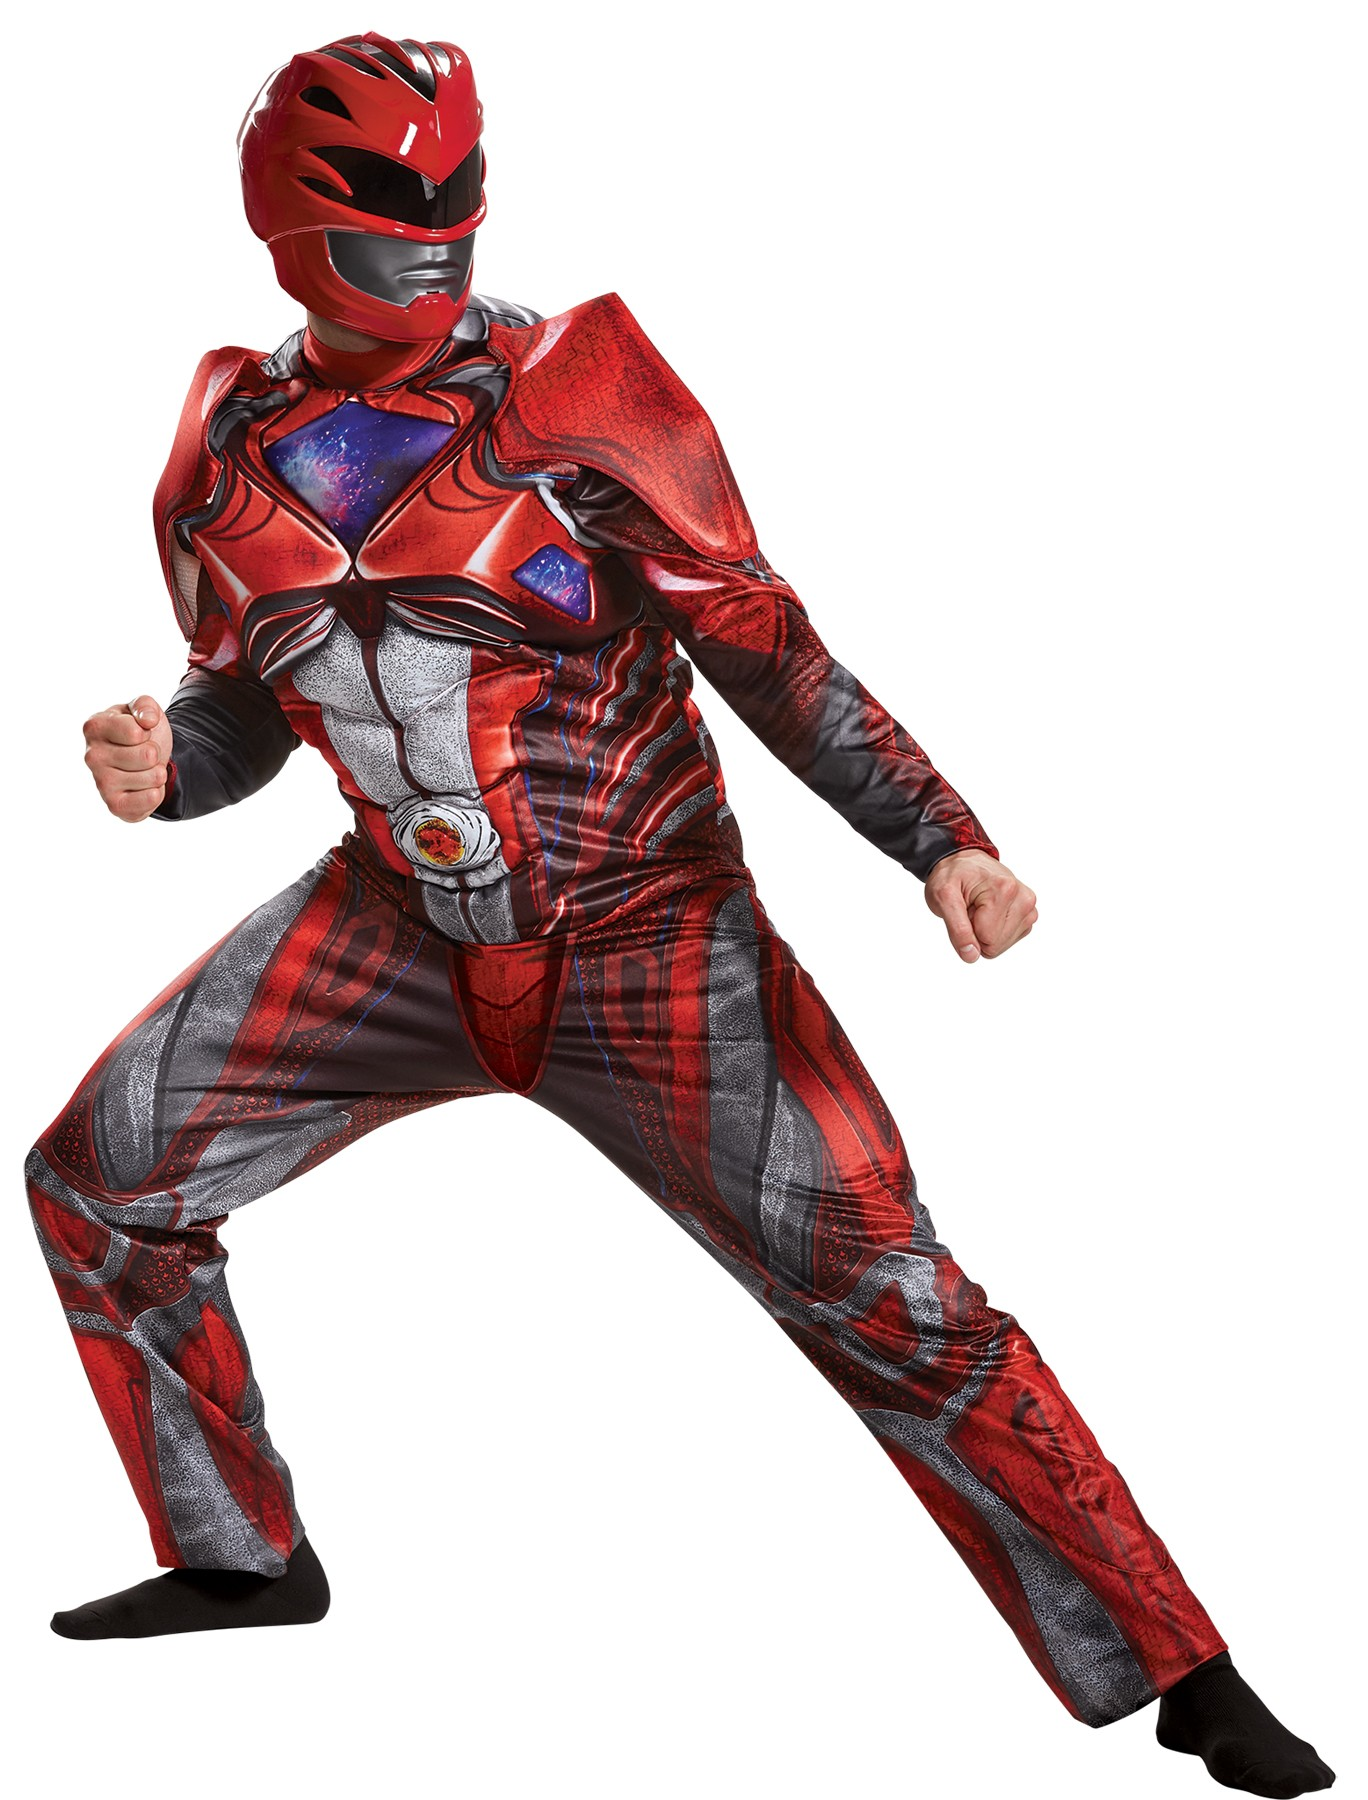 081034aa204 Power Rangers 2017 Red Ranger Muscle Adult Costume.jpg